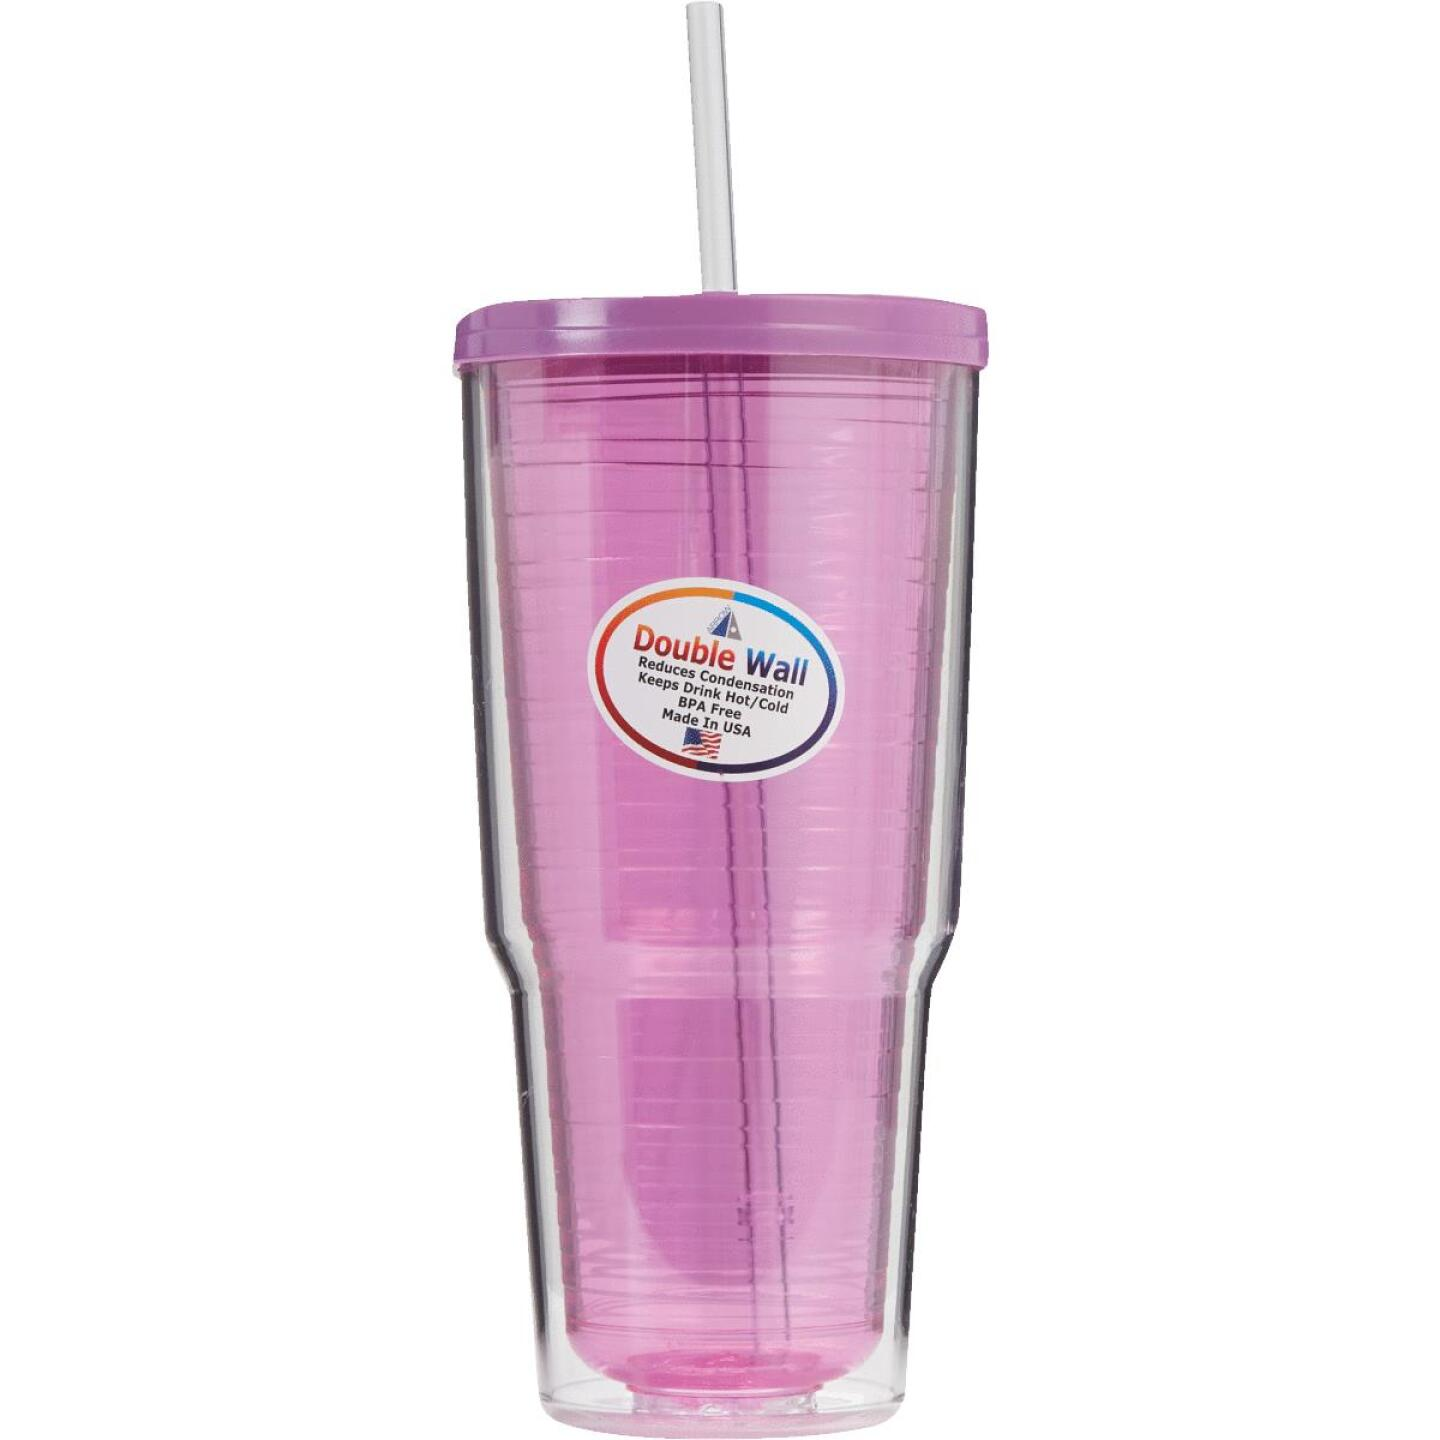 Arrow 24 Oz. Double Wall Insulated Tumbler Image 2